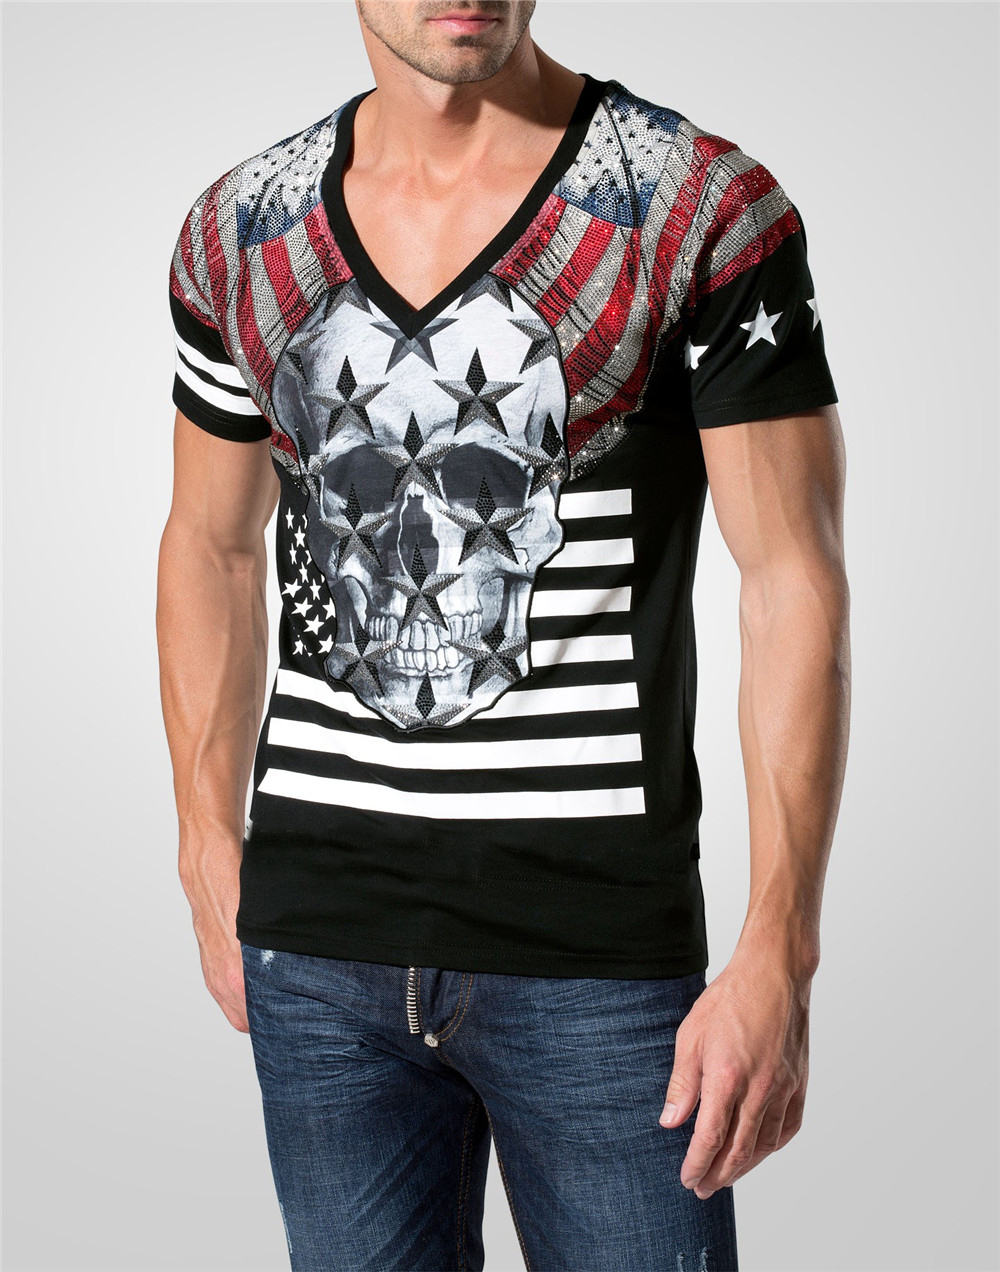 Mens Summer Brand T Shirt 2016 Fashion Men Short Tee 3d